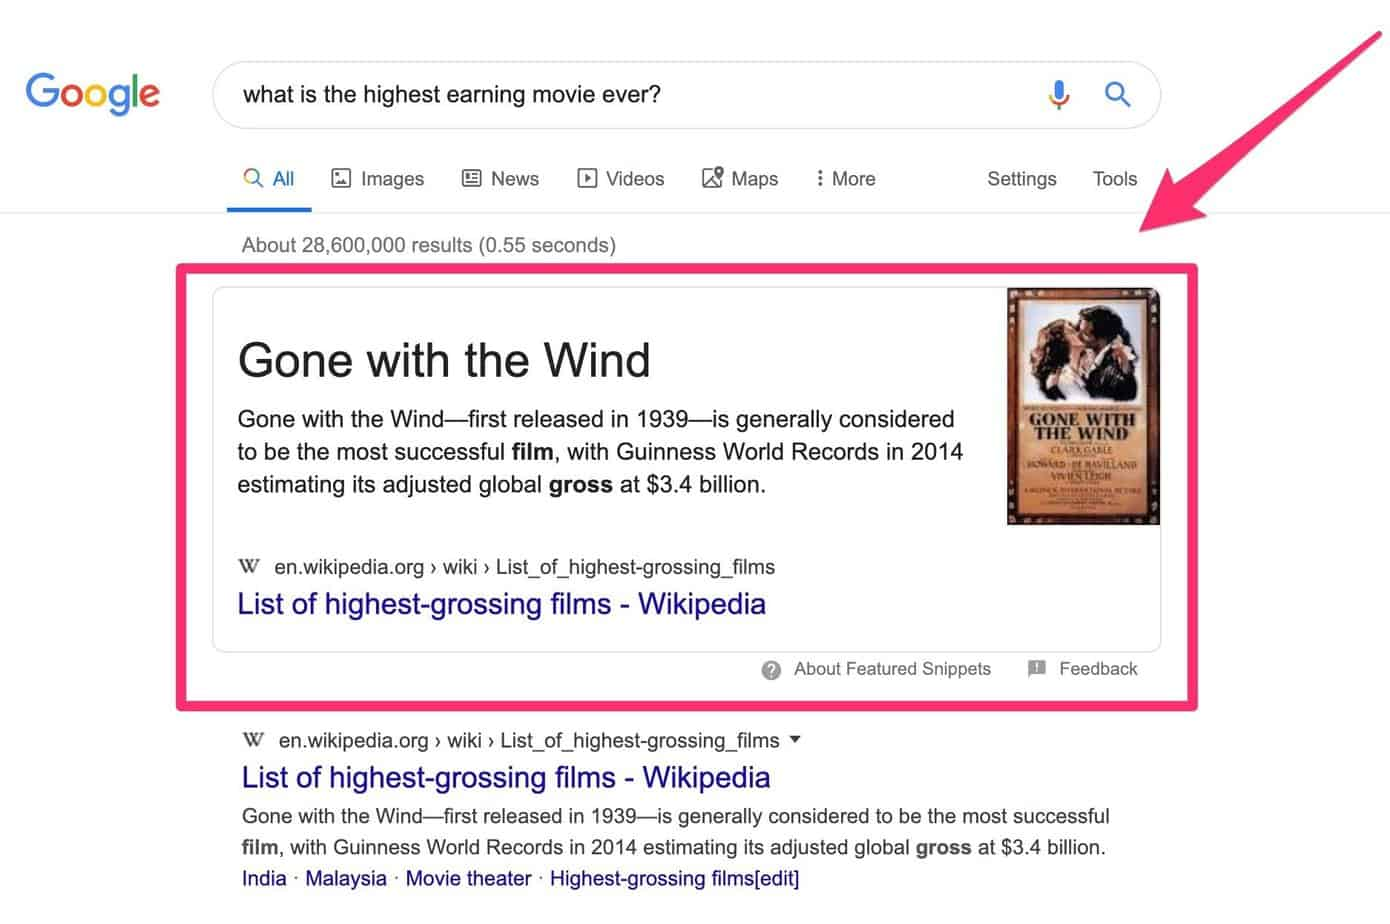 Google SEO trends for 2020 - example of a zero-click search